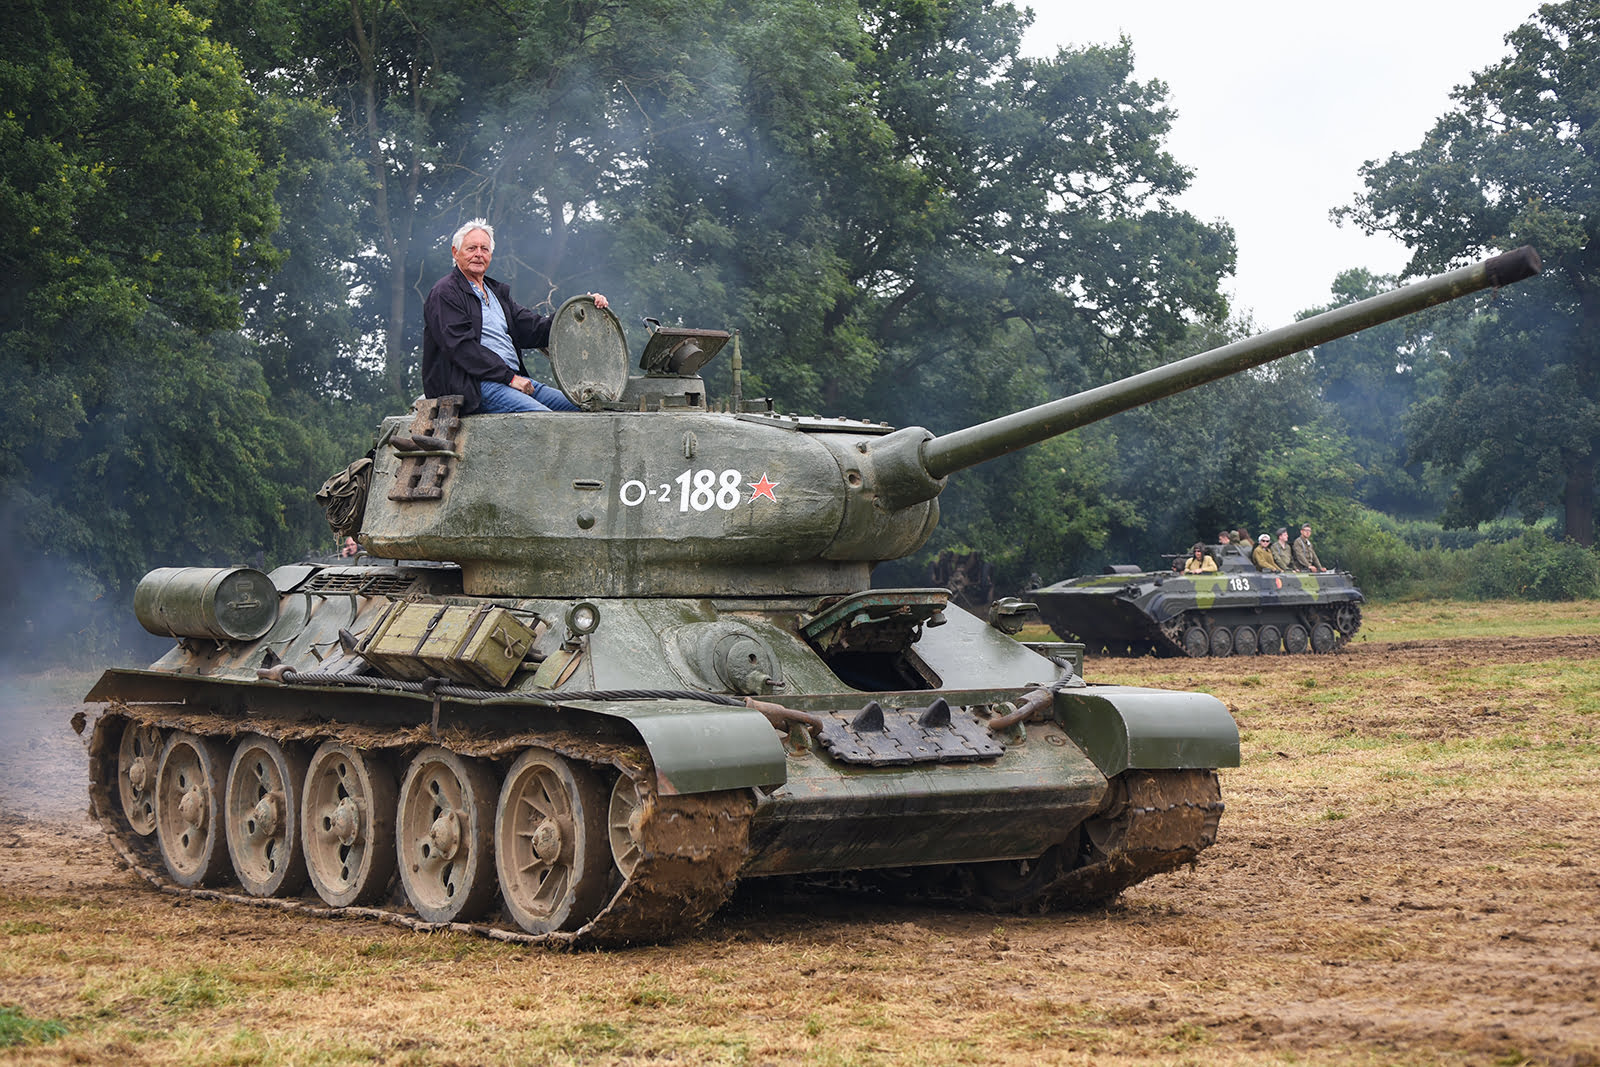 Tank at Capel Military Show